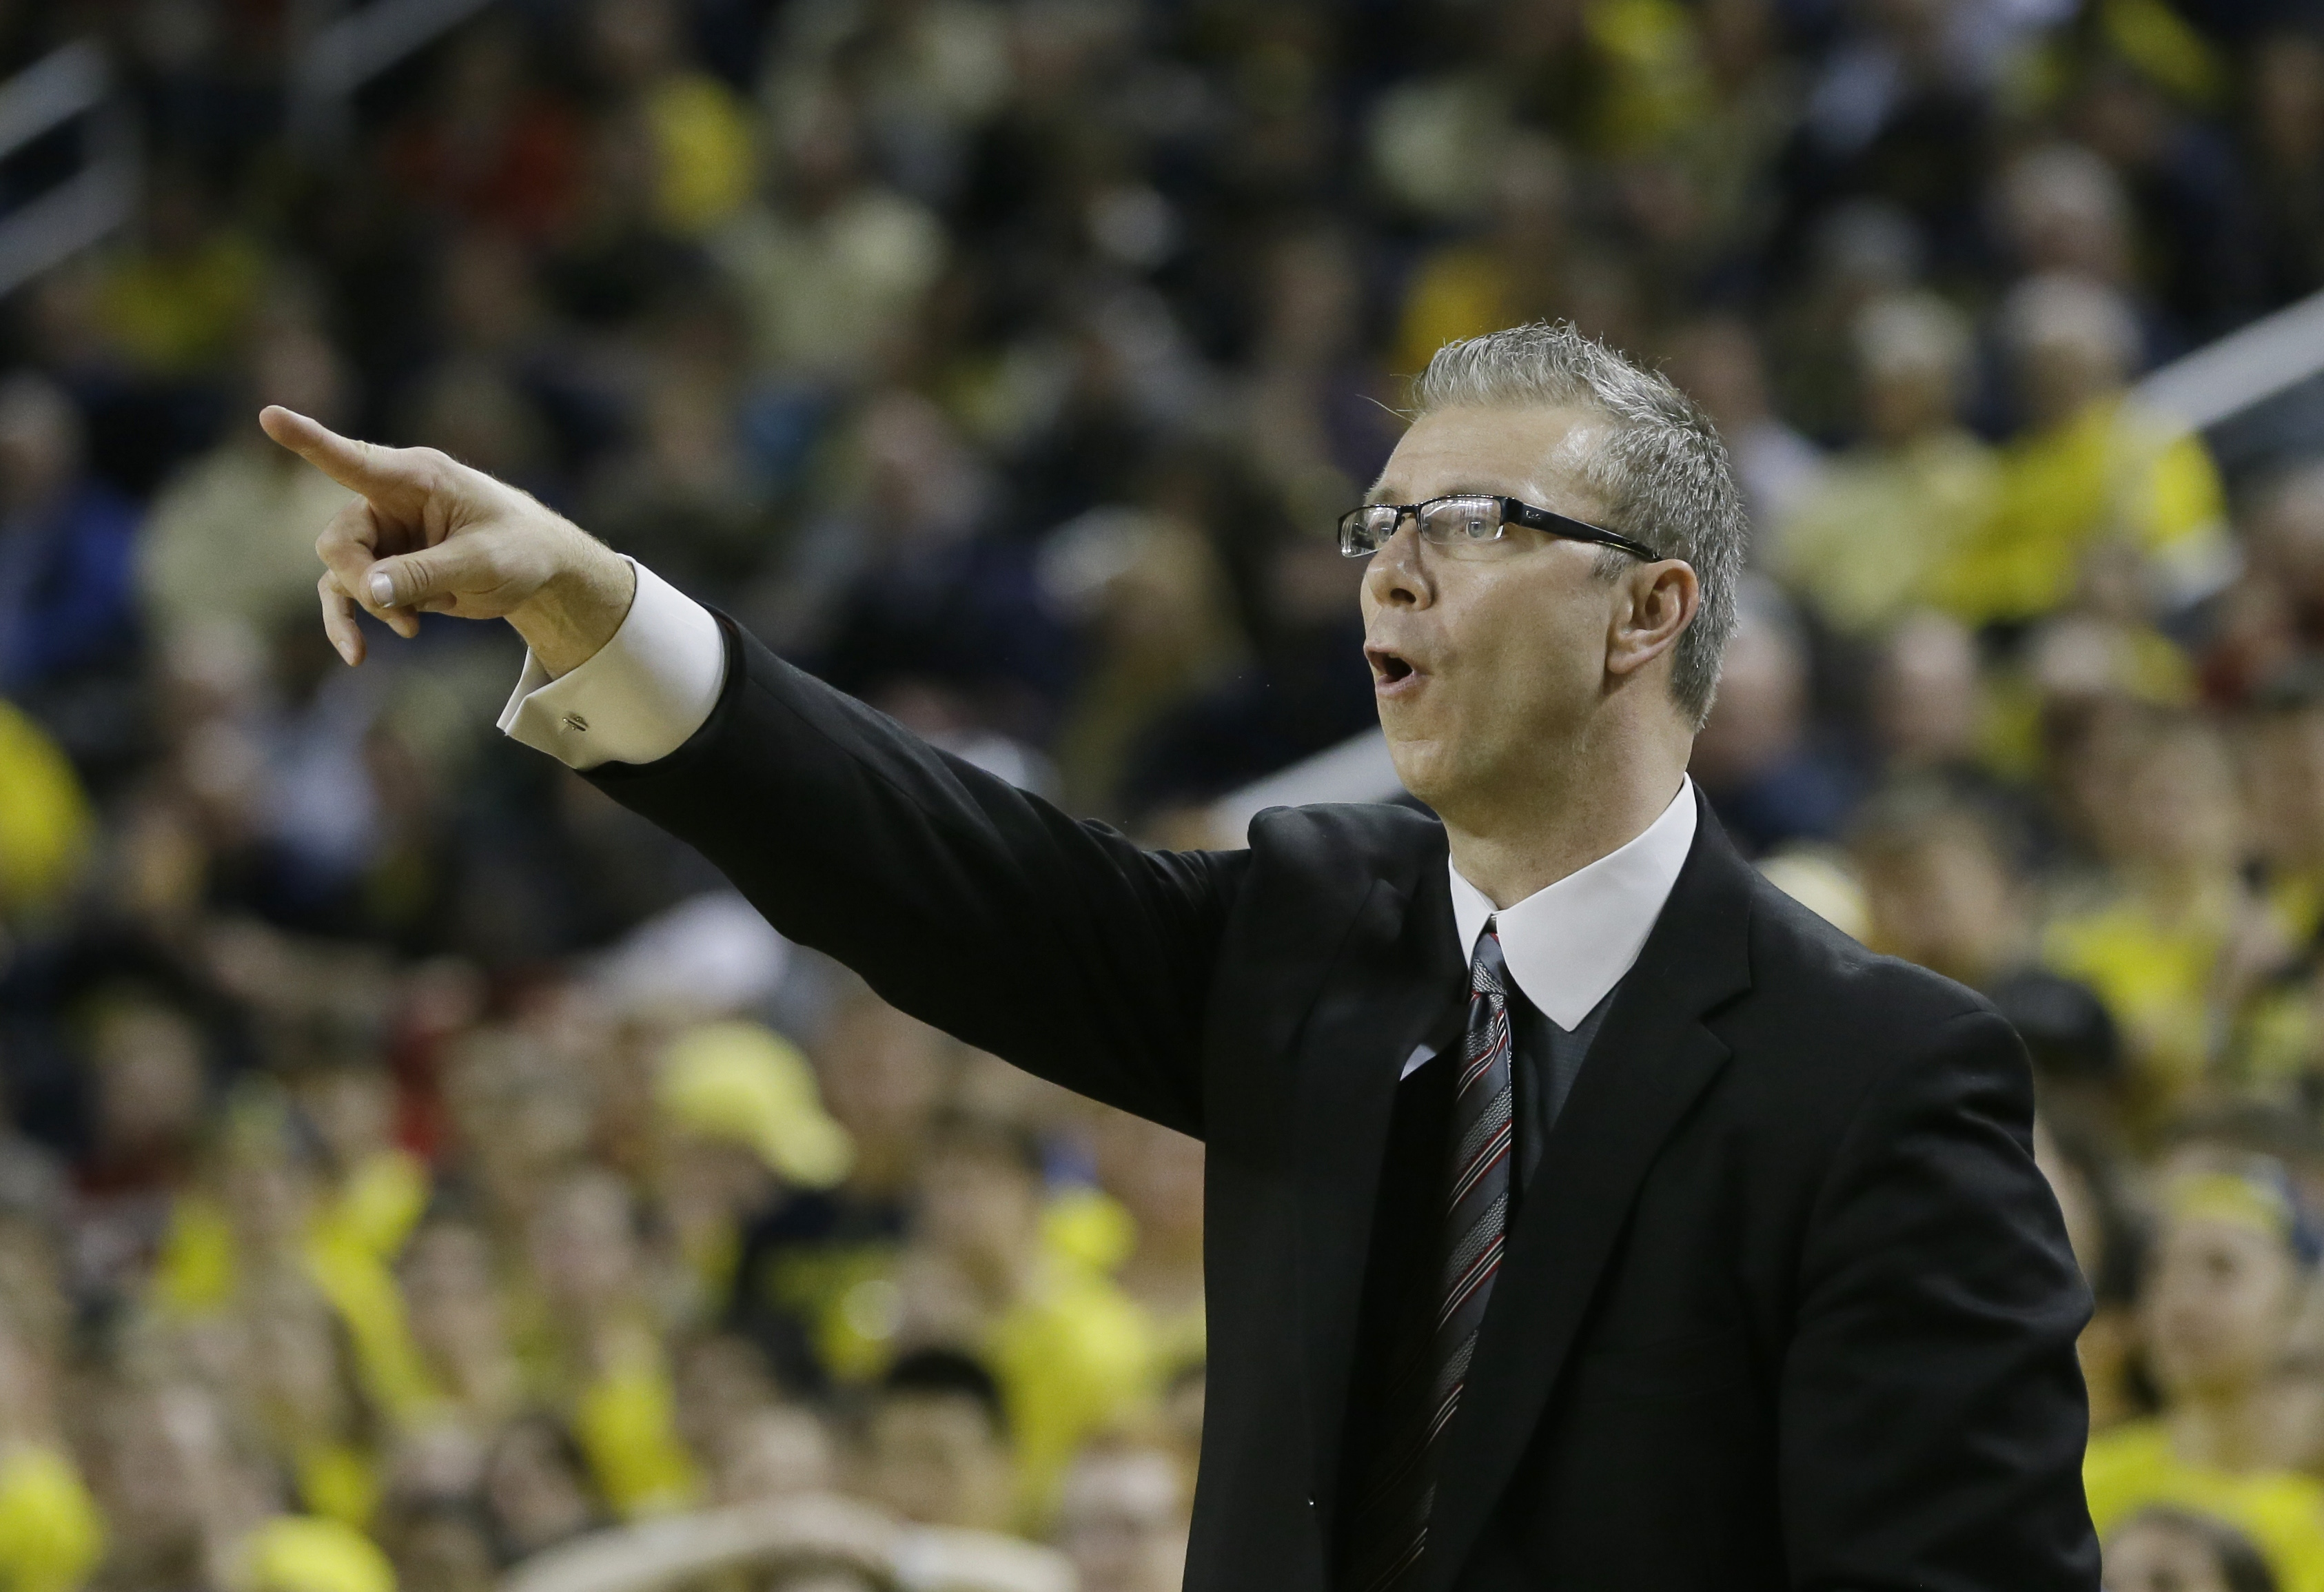 Ohio State assistant coach Jeff Boals directs from the sidelines during the second half of an NCAA college basketball game against Michigan, Sunday, Feb. 22, 2015 in Ann Arbor, Mich. Michigan defeated Ohio State 64-57. (AP Photo/Carlos Osorio)